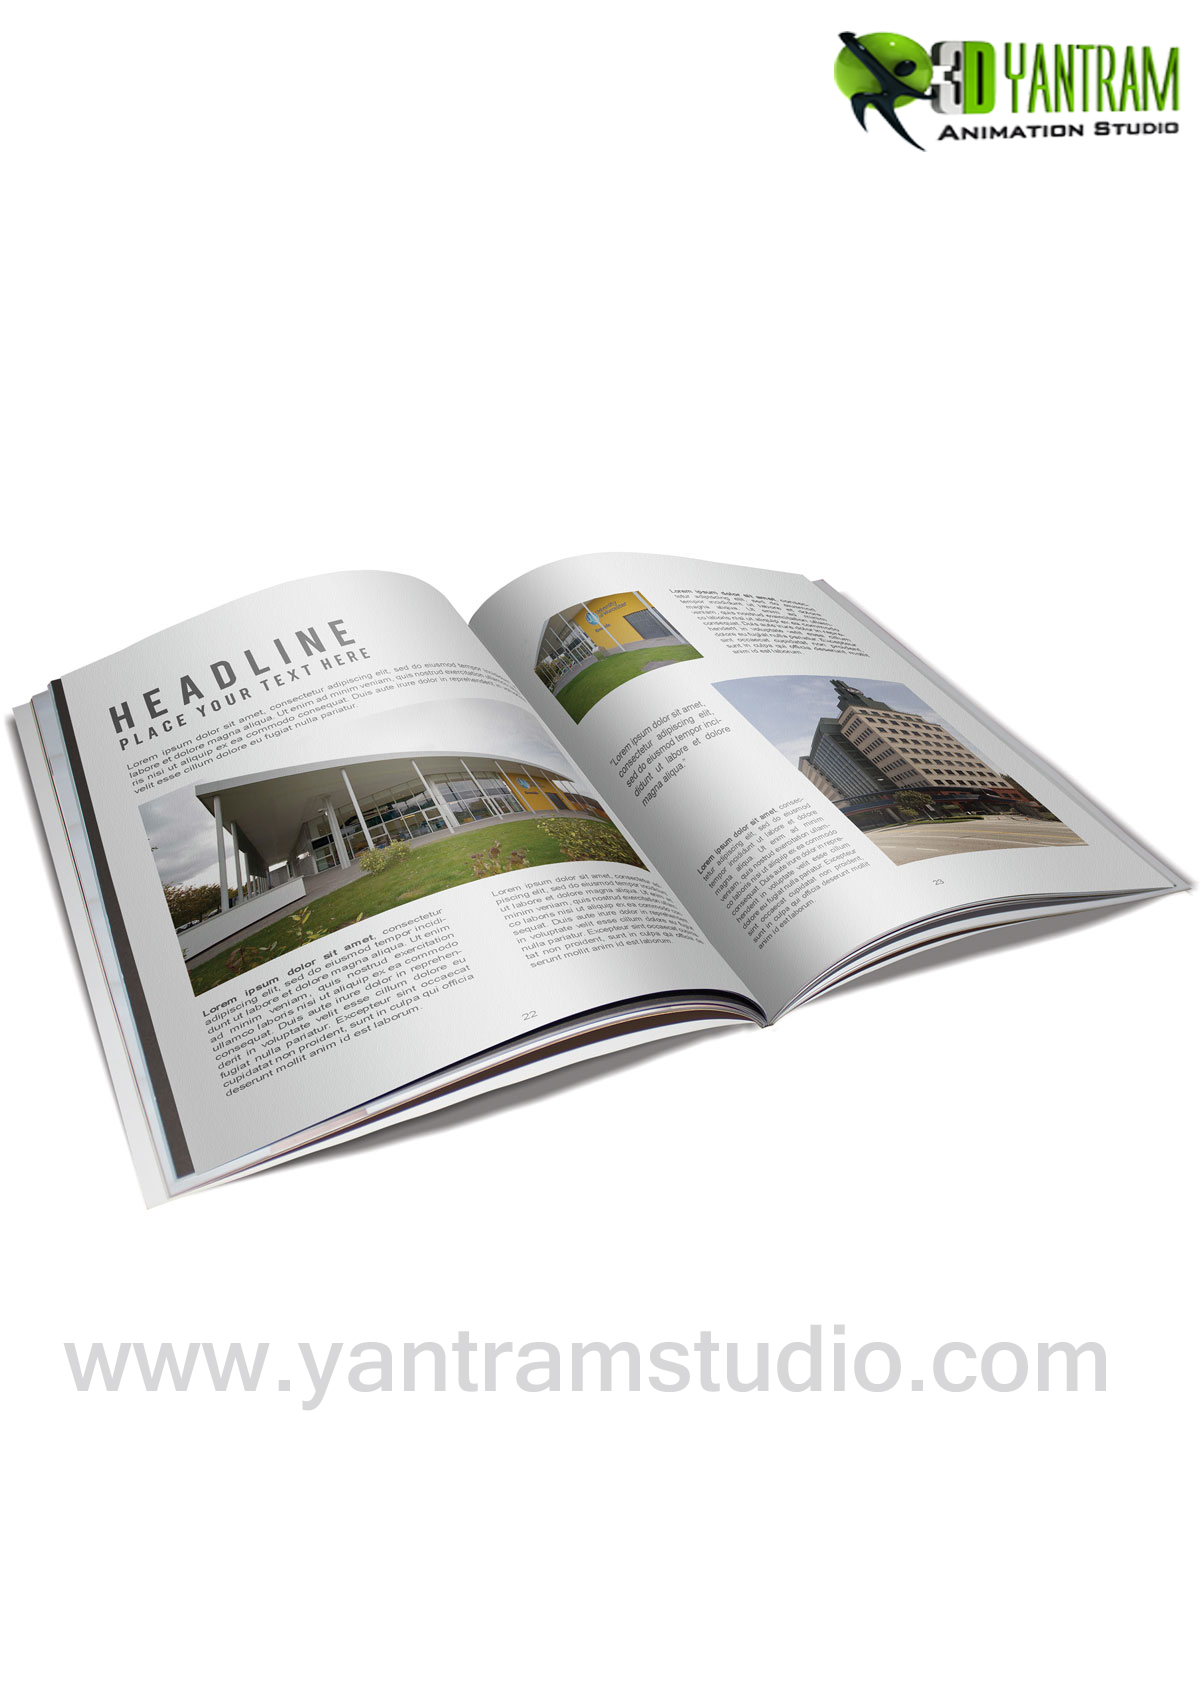 Real Estate Booklet Services By Yantram website development - New jersey, USA - Digital Media Branding & Broadcasting Agency provides highly creative Interactive web app, Web Development, corporate identity. by yantramstudio